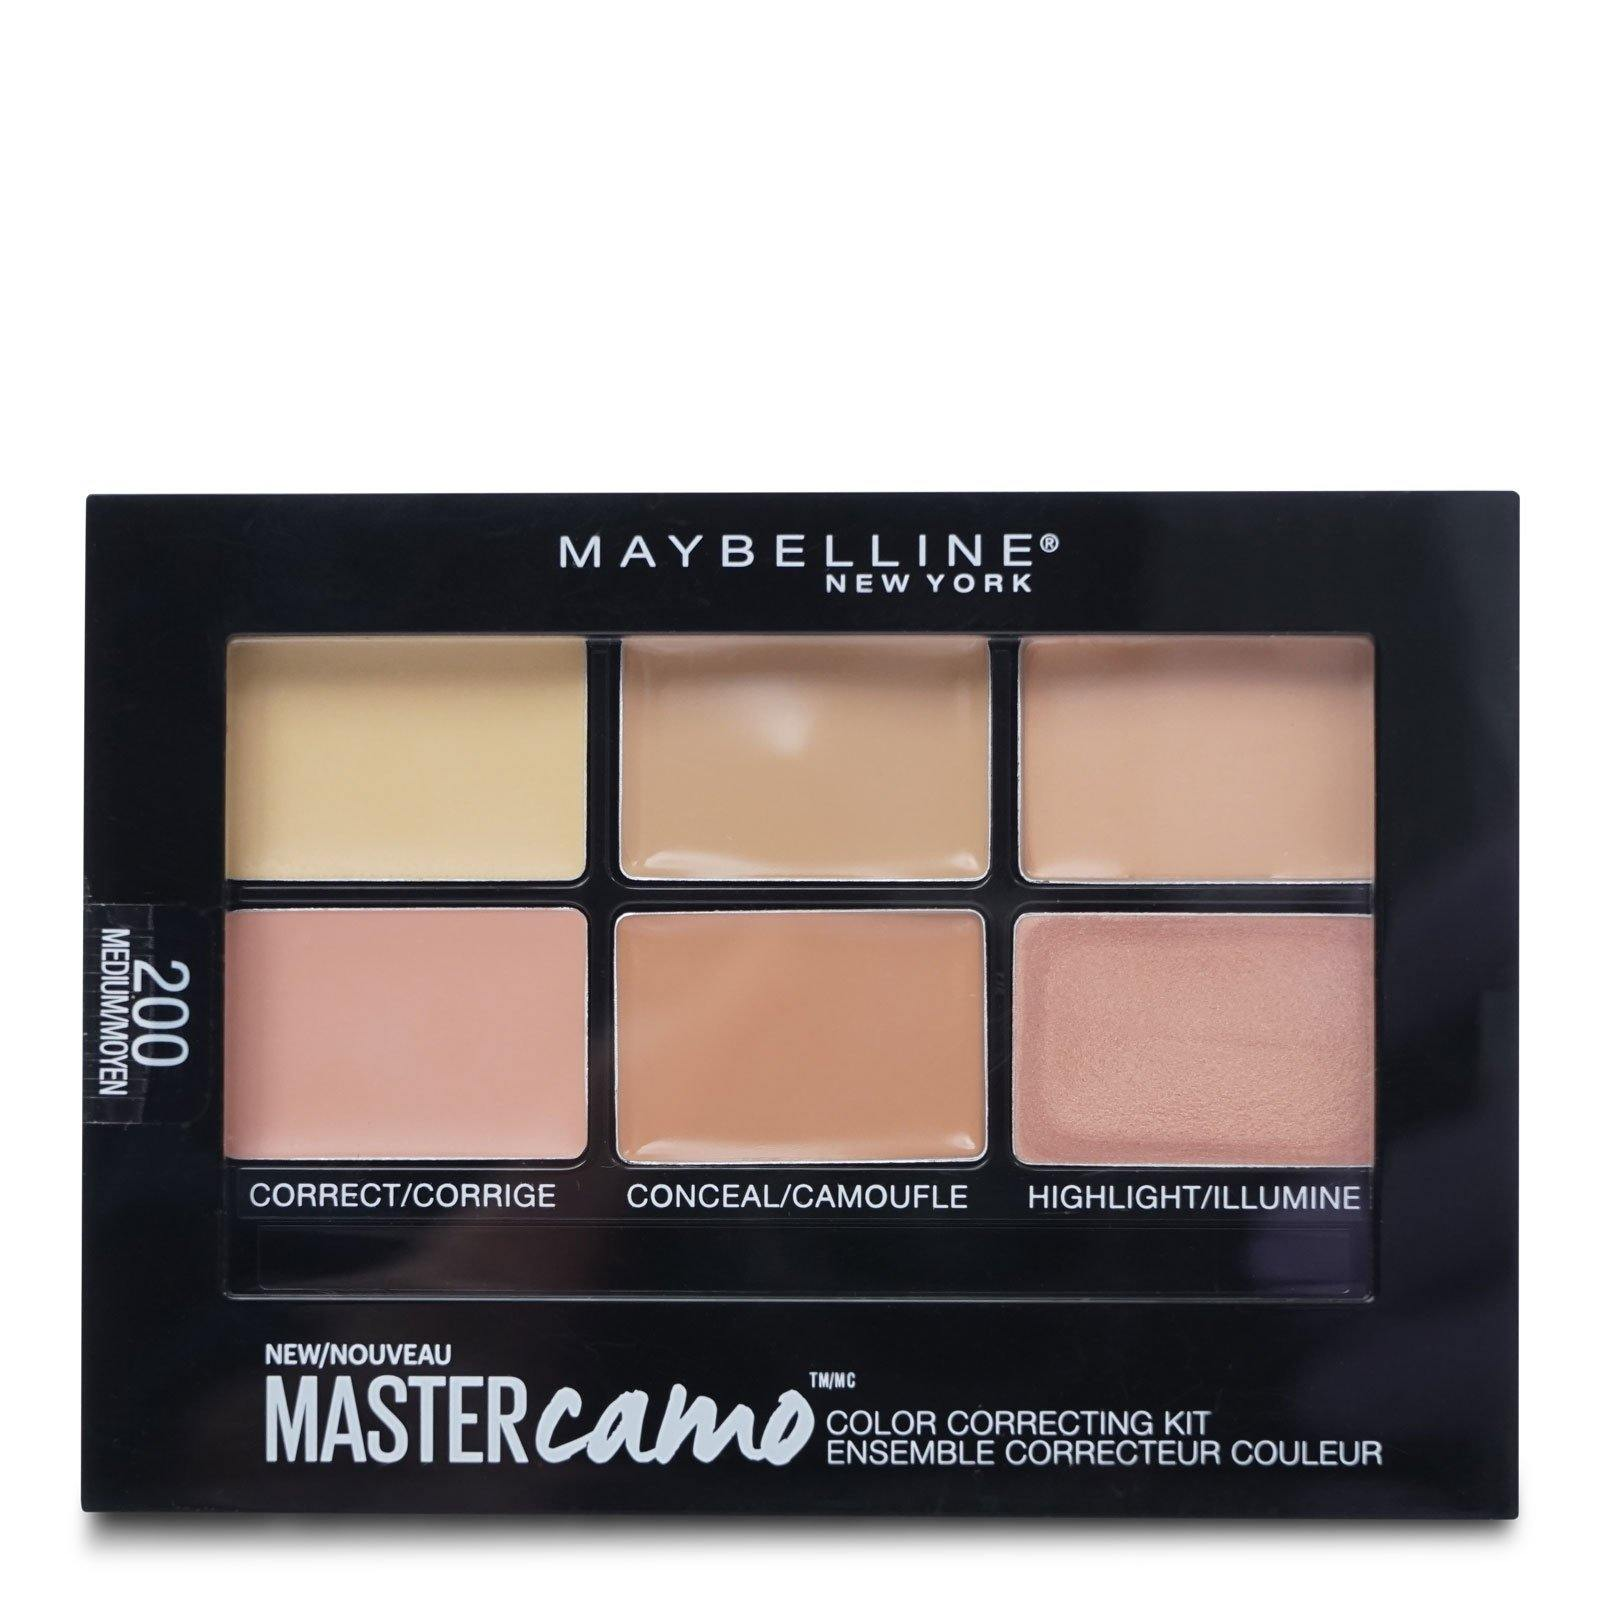 MAYBELLINE MASTER CAMO CONCEALER KIT Correct, Conceal And Highlight